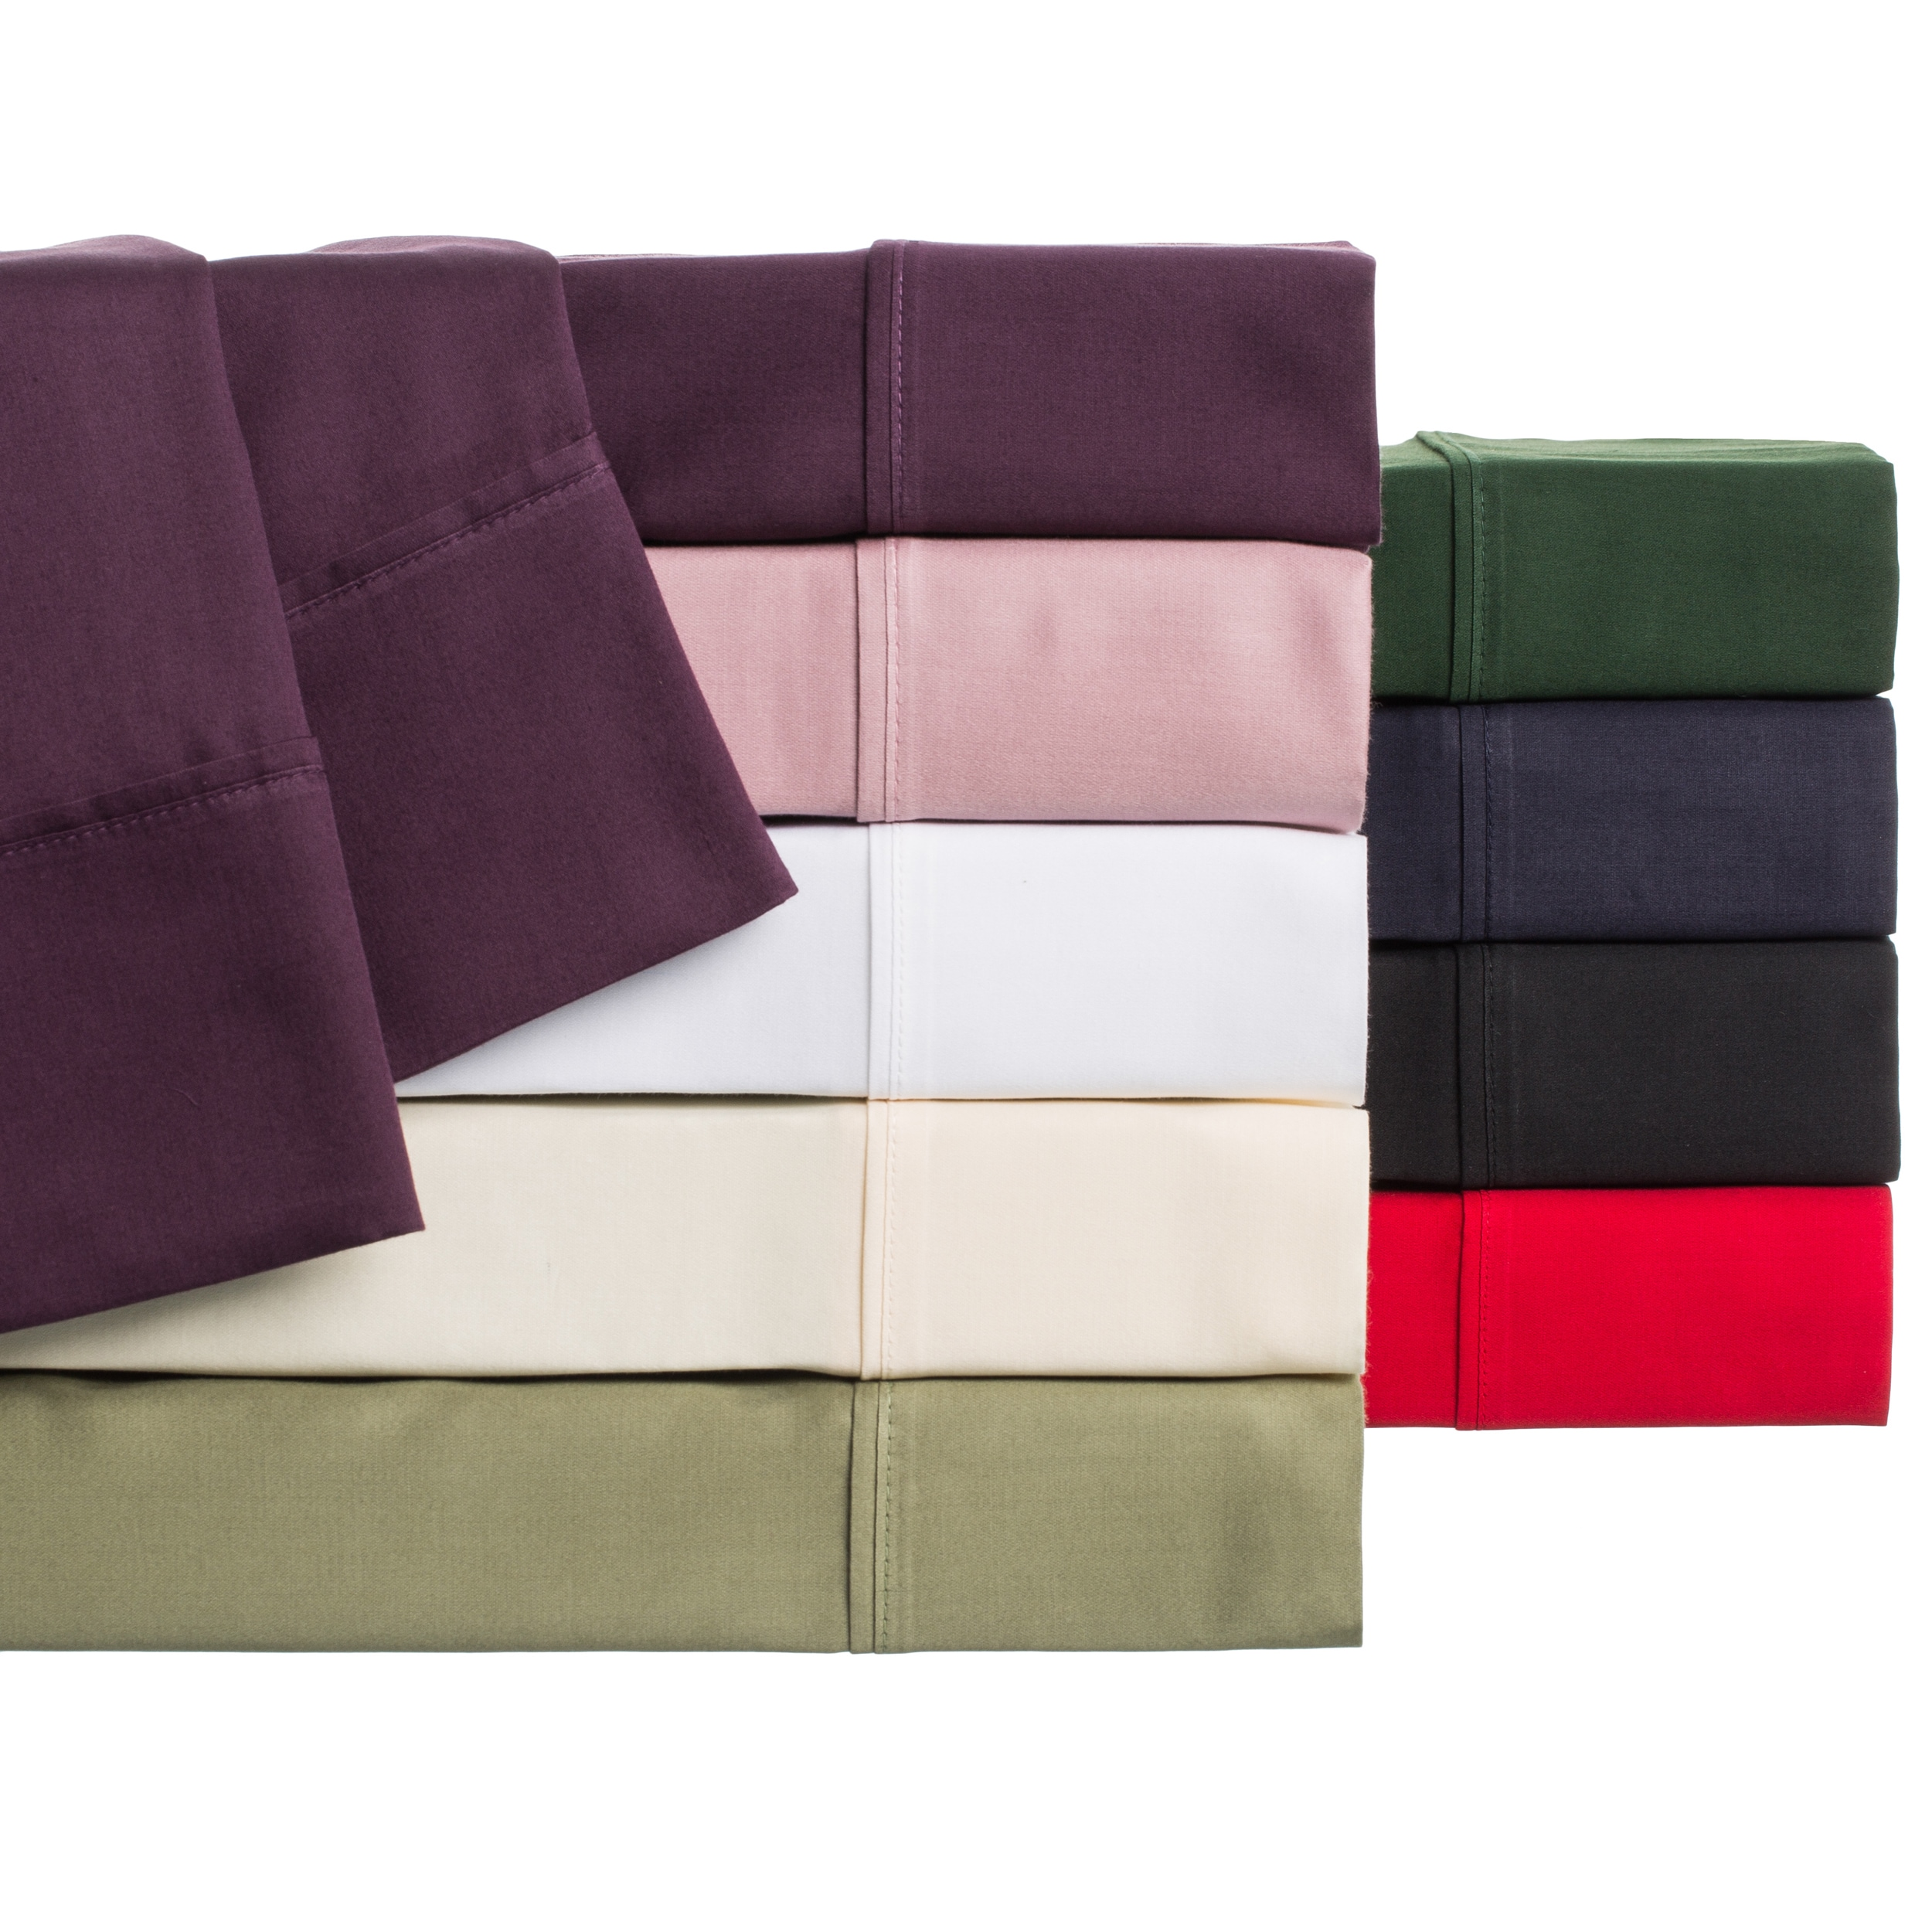 AT HOME by O Egyptian Cotton Sateen 300 Thread Count Split King Sheet Set at Sears.com